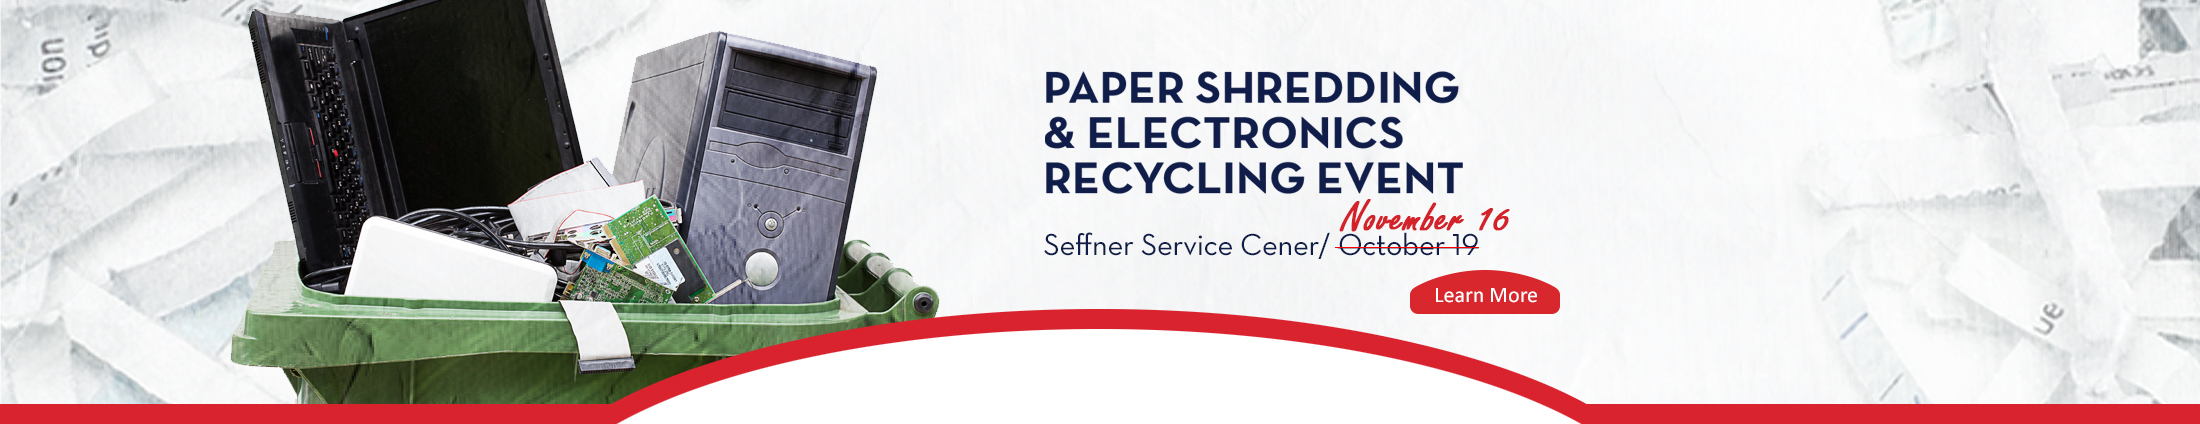 Shred Event Seffner 2019